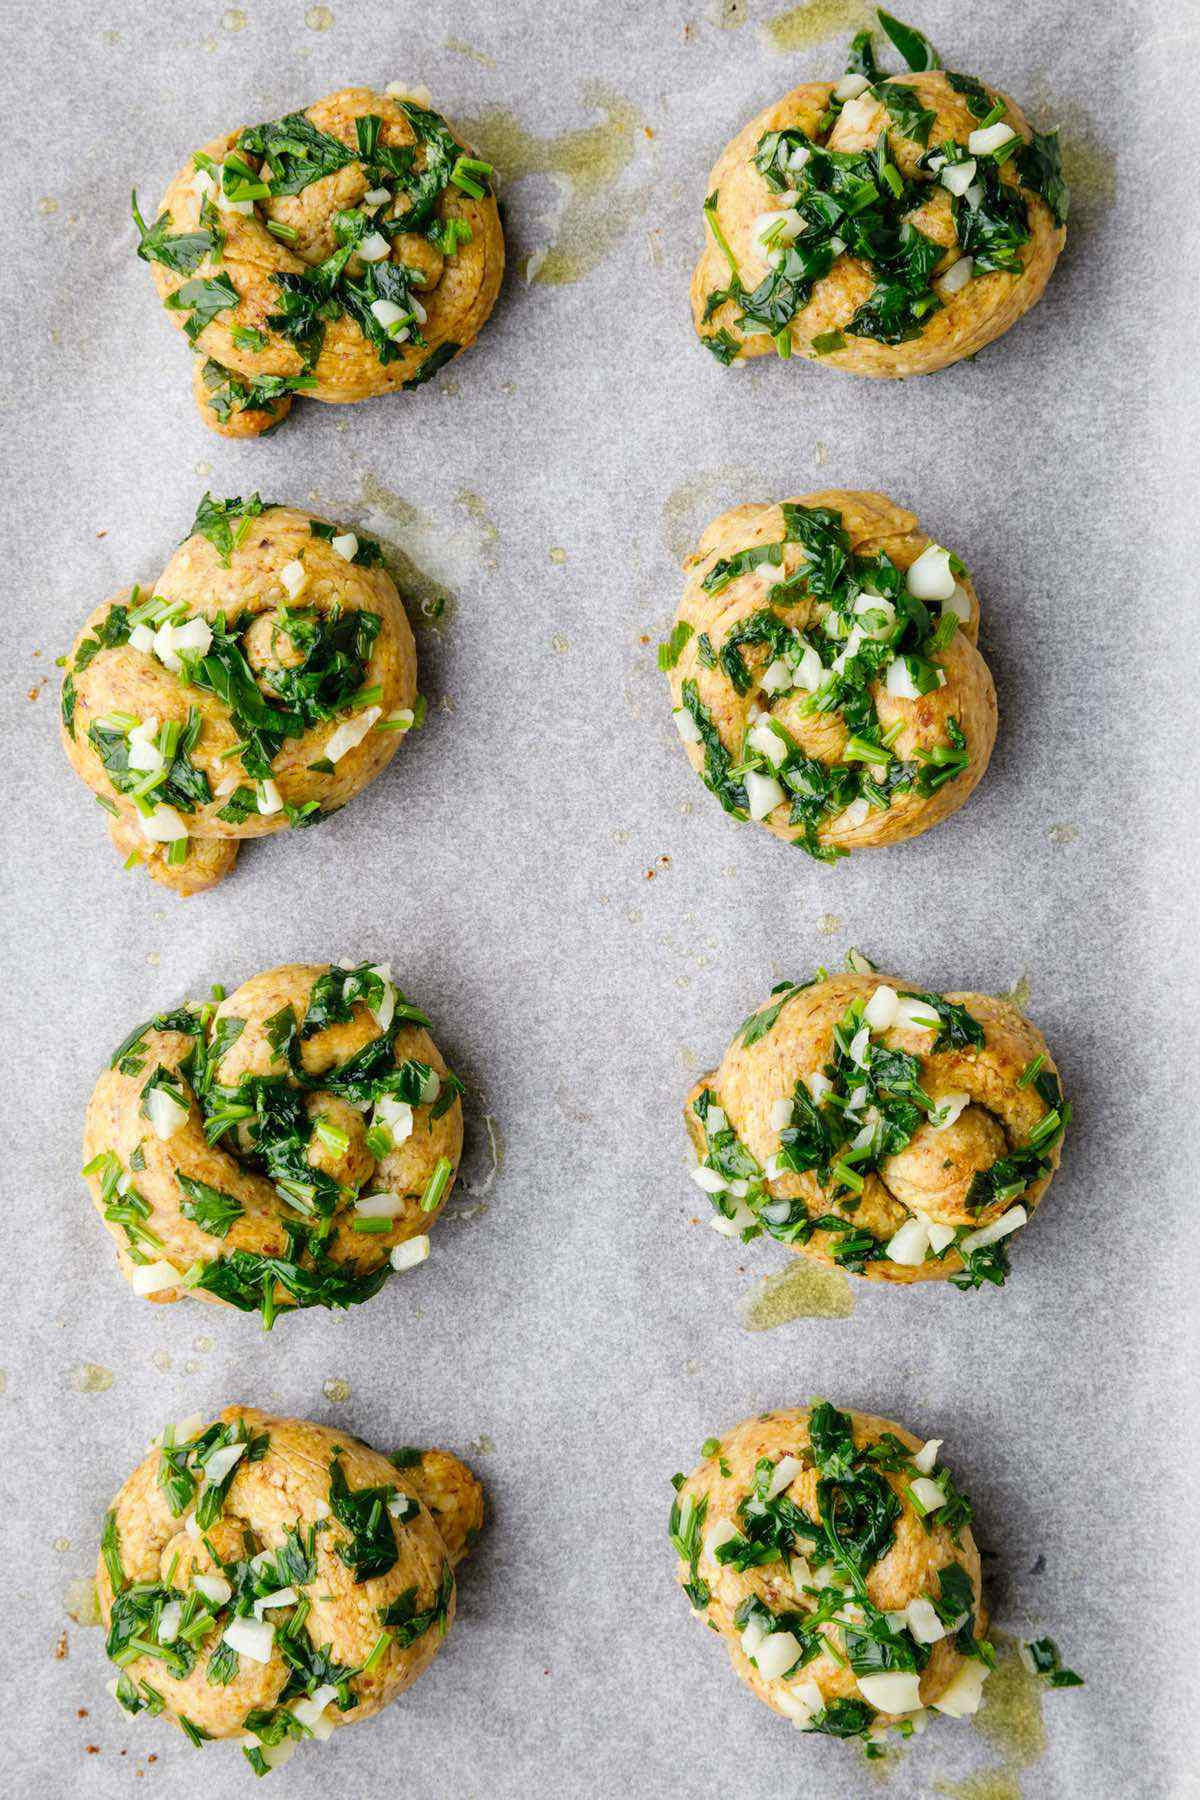 baked garlic knots